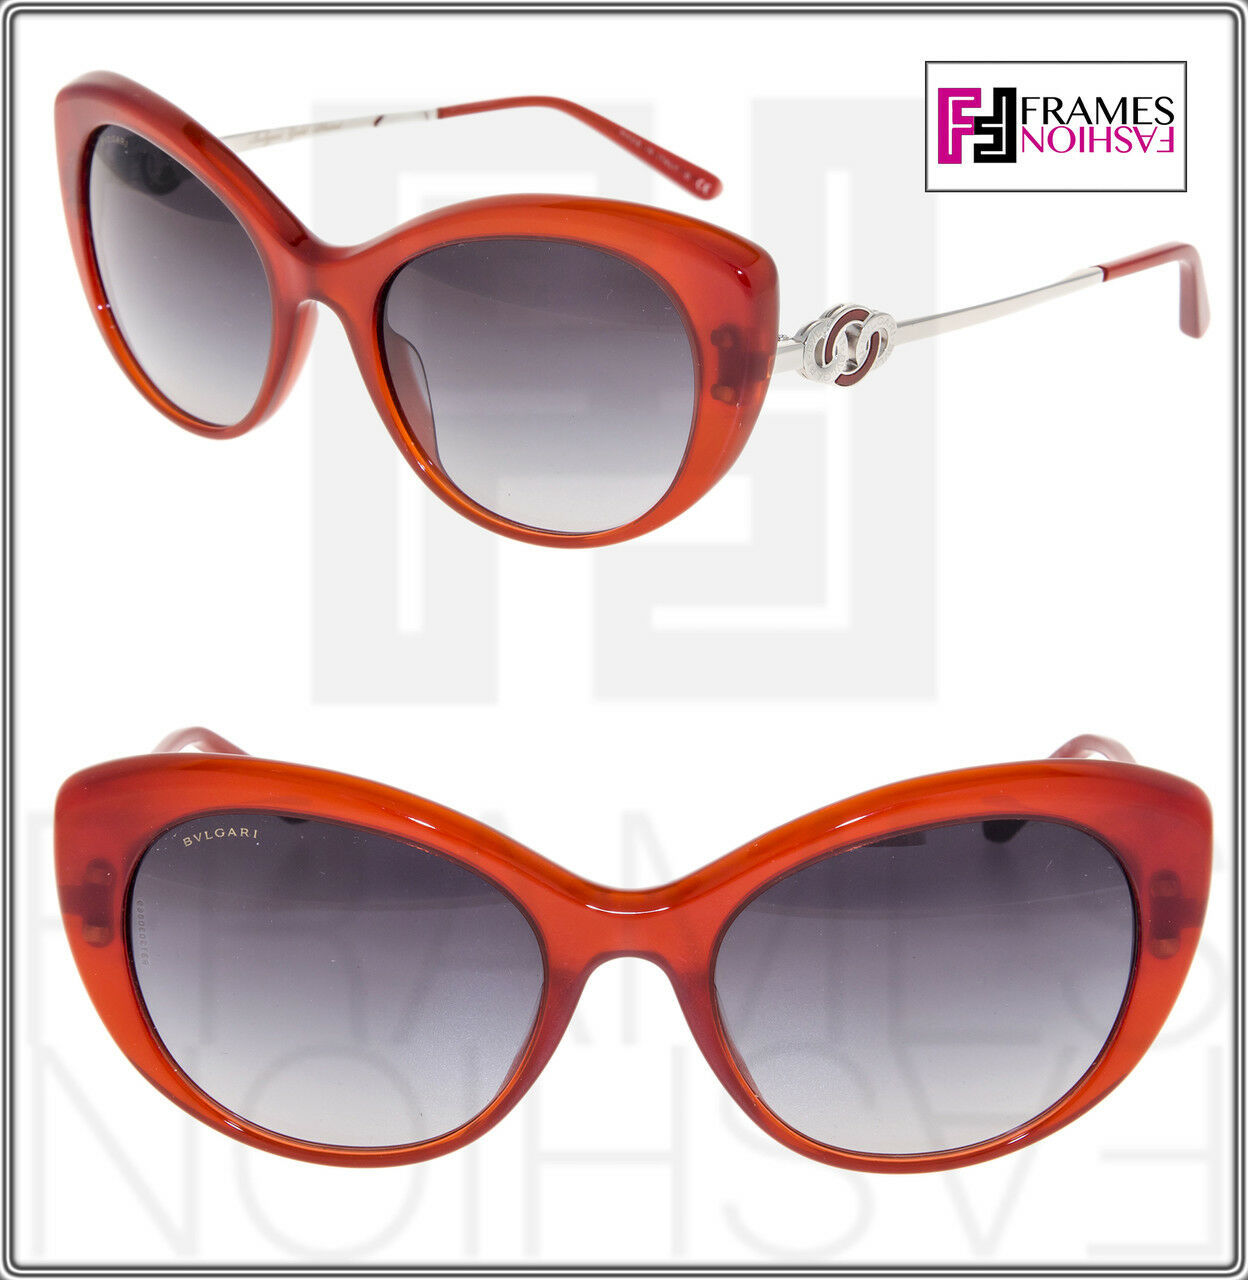 BVLGARI Le Gemme BV 8141K Translucent Red 18K Gold Plated Edition Sunglasses